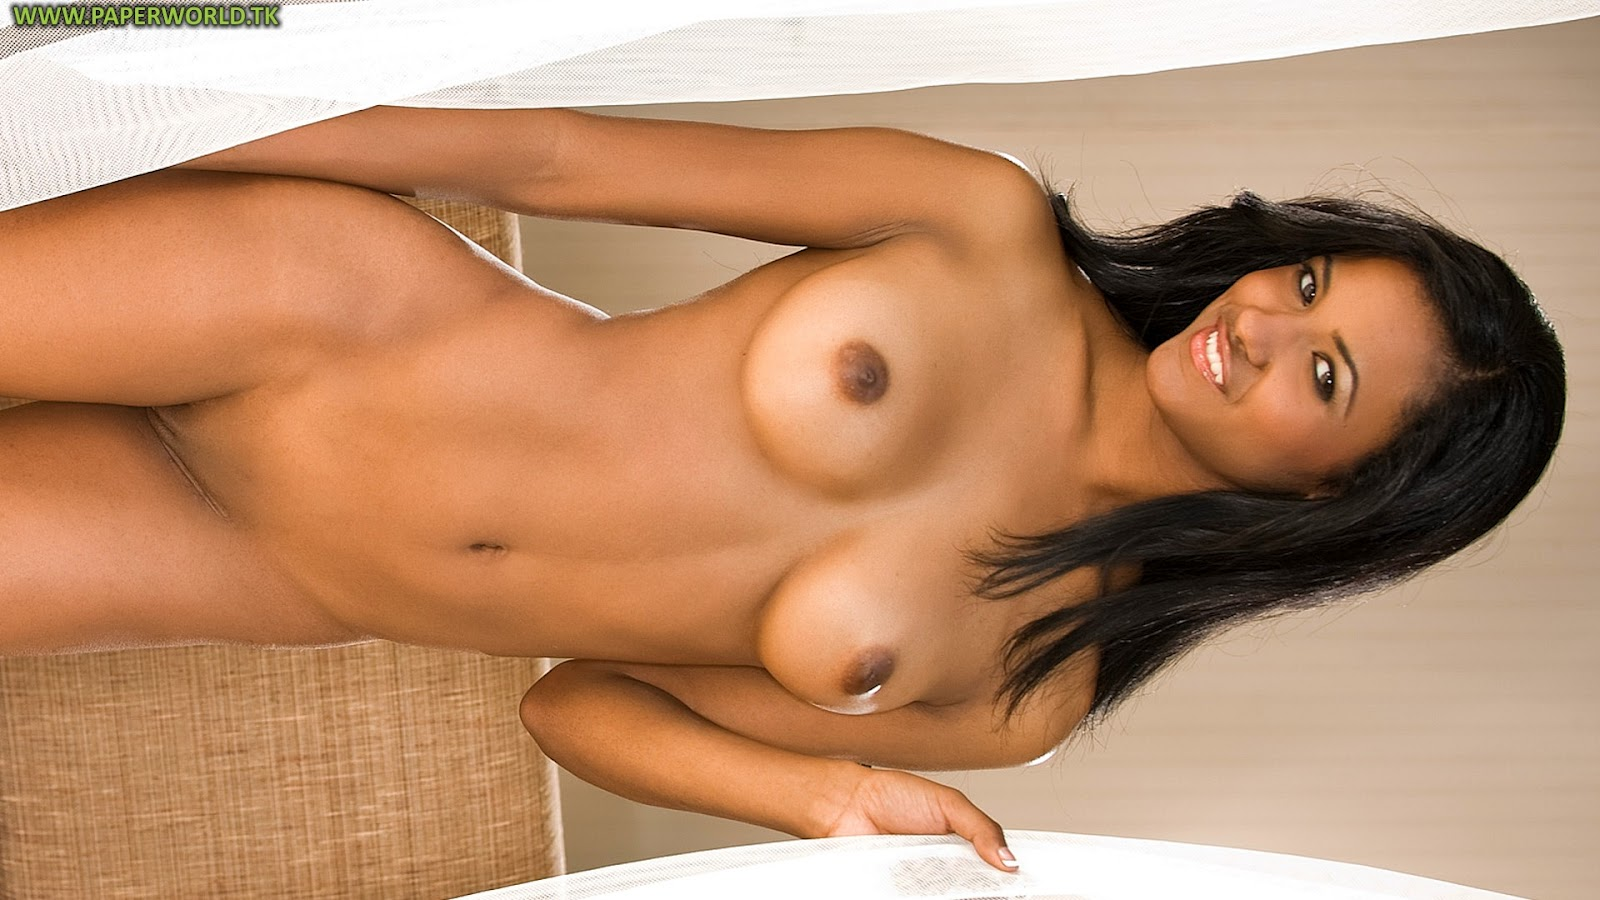 Lexxie gives jerk off instructions